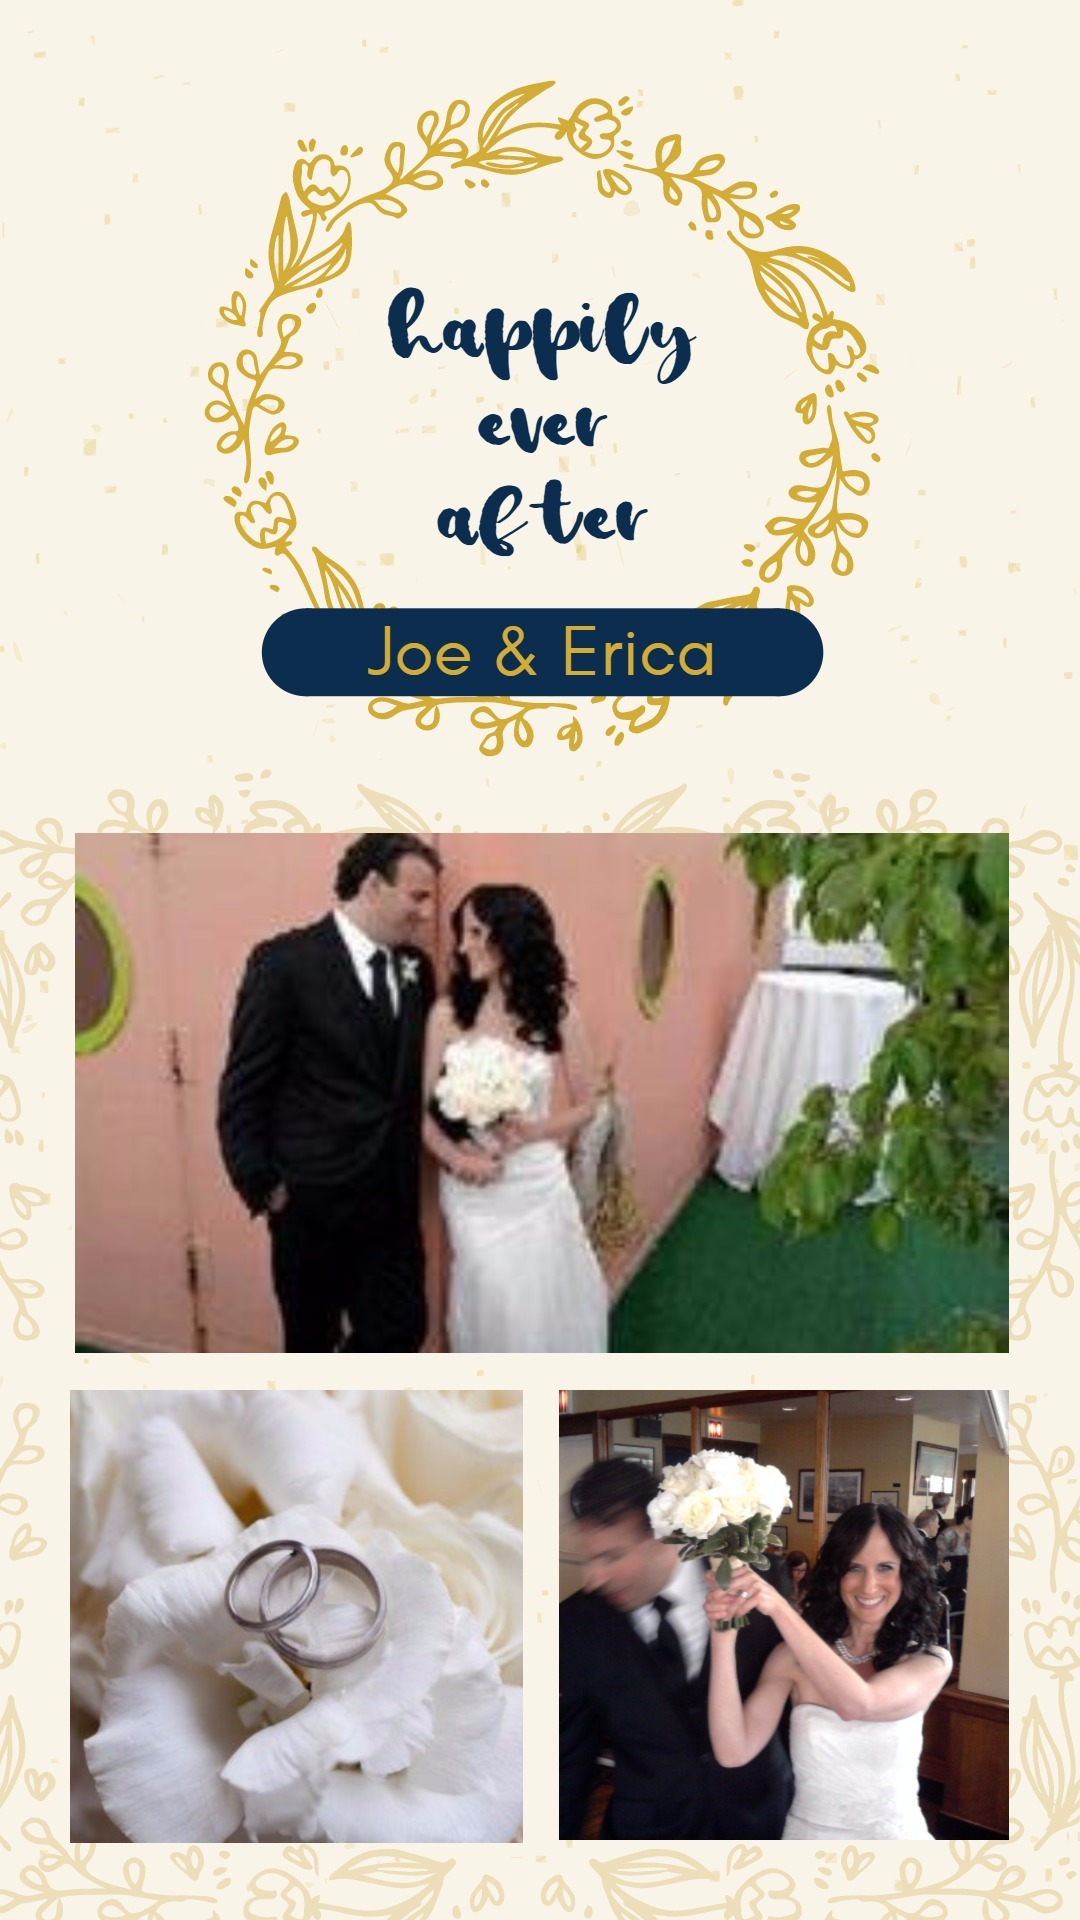 How I used Fotor editing tools to commemorate my wedding photos